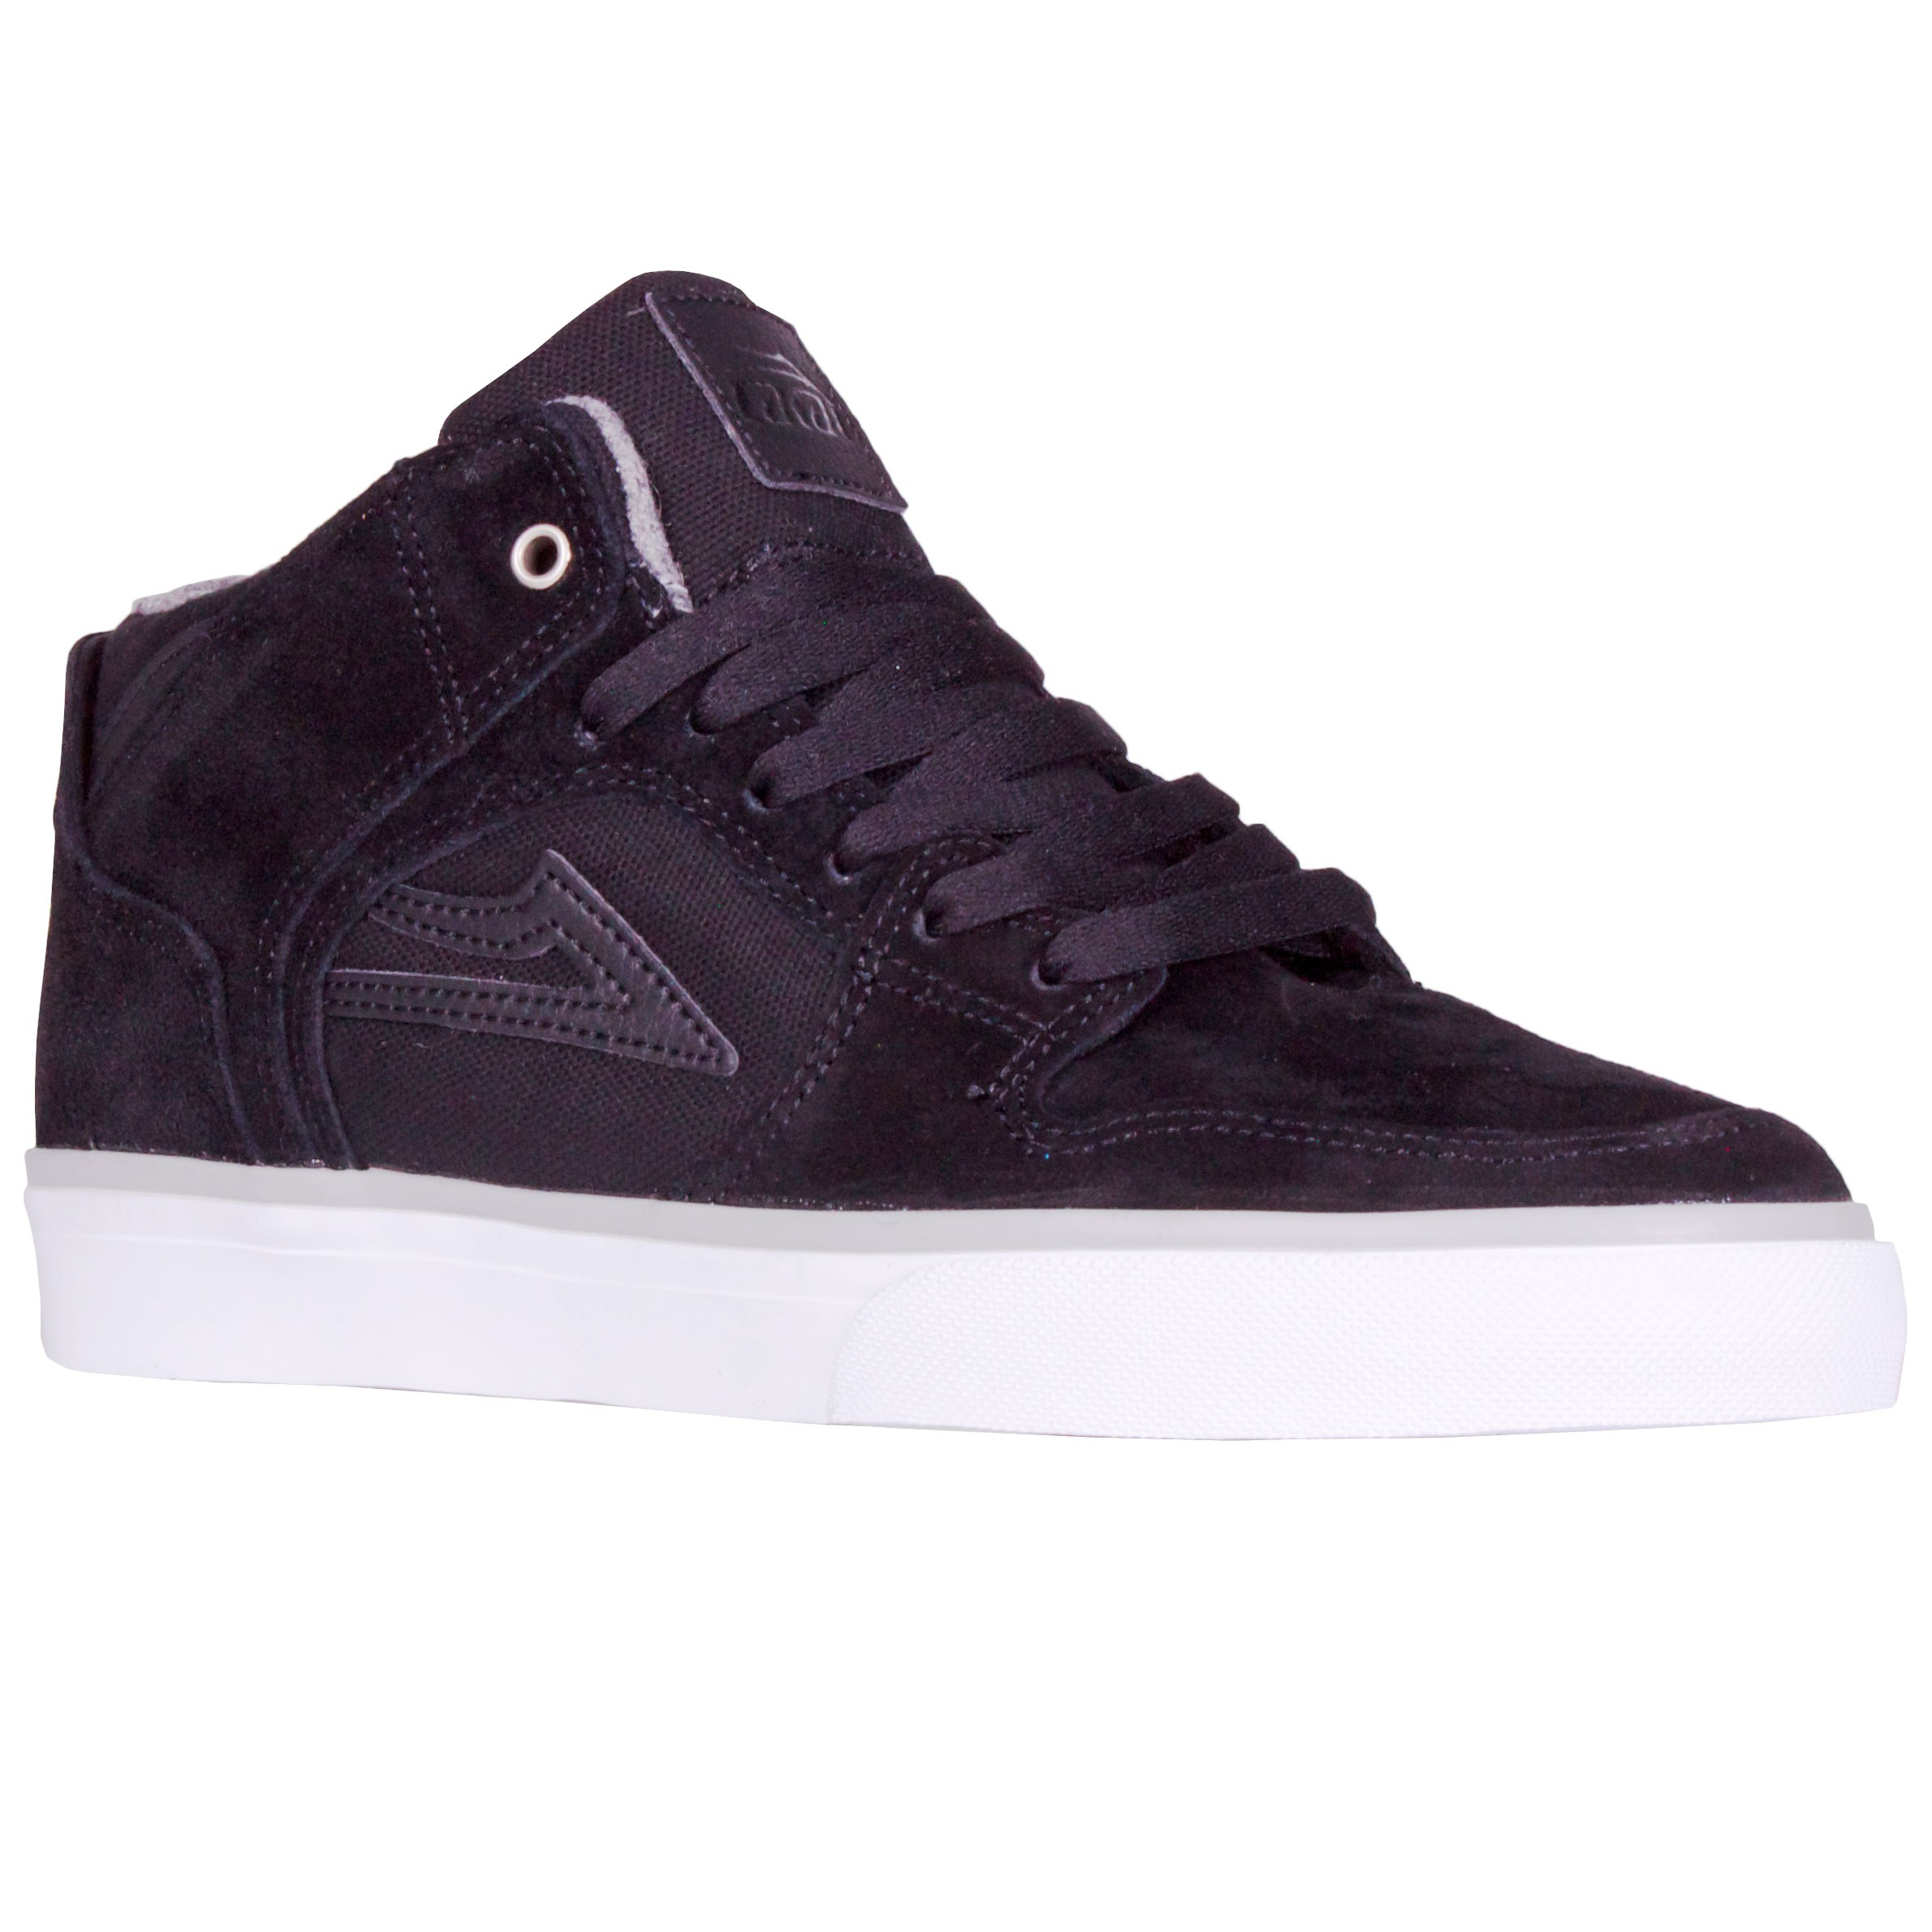 Lakai Telford Shoes - Black Suede 12.0